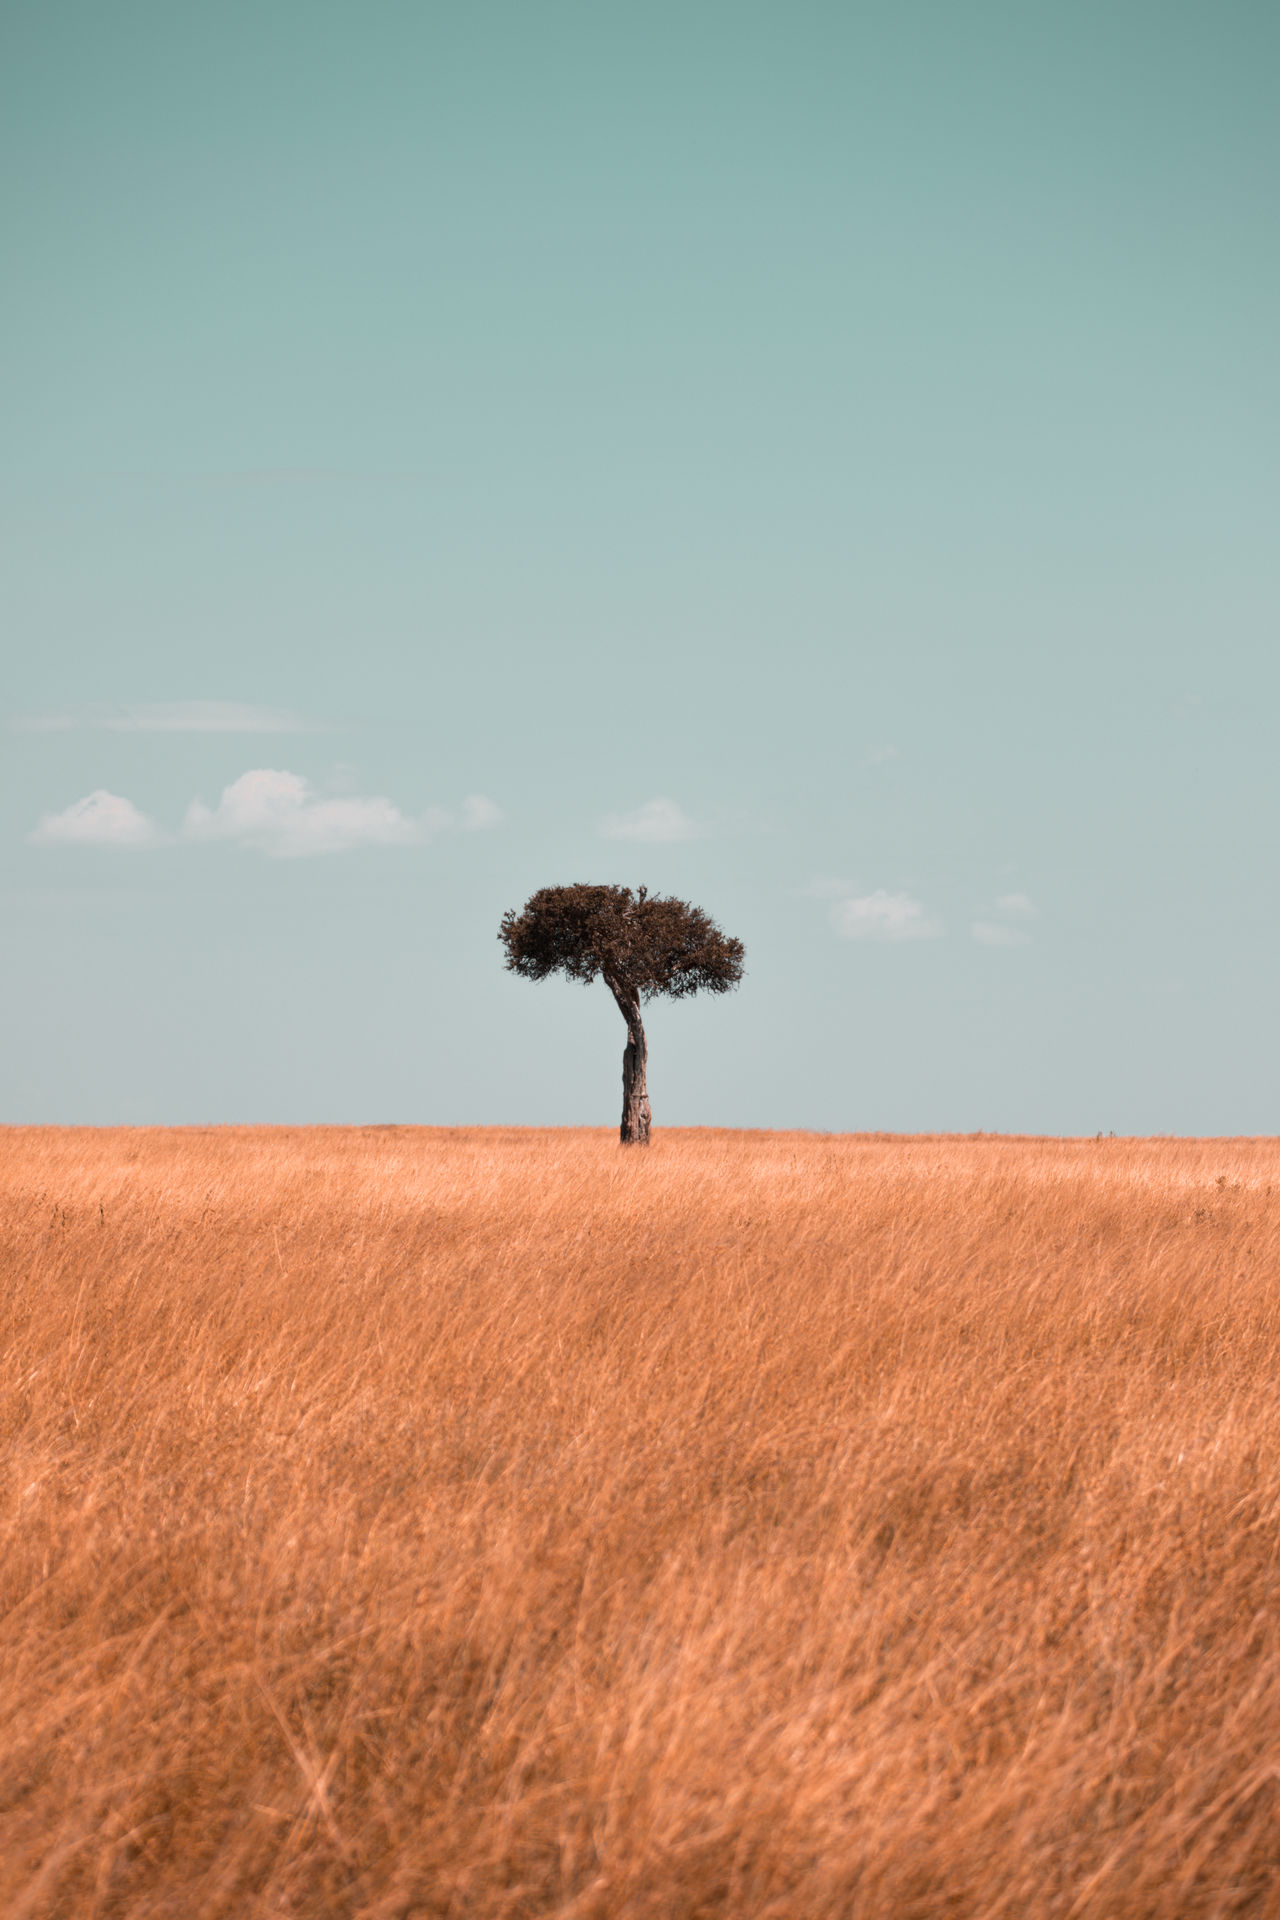 Tree on grassy landscape against sky